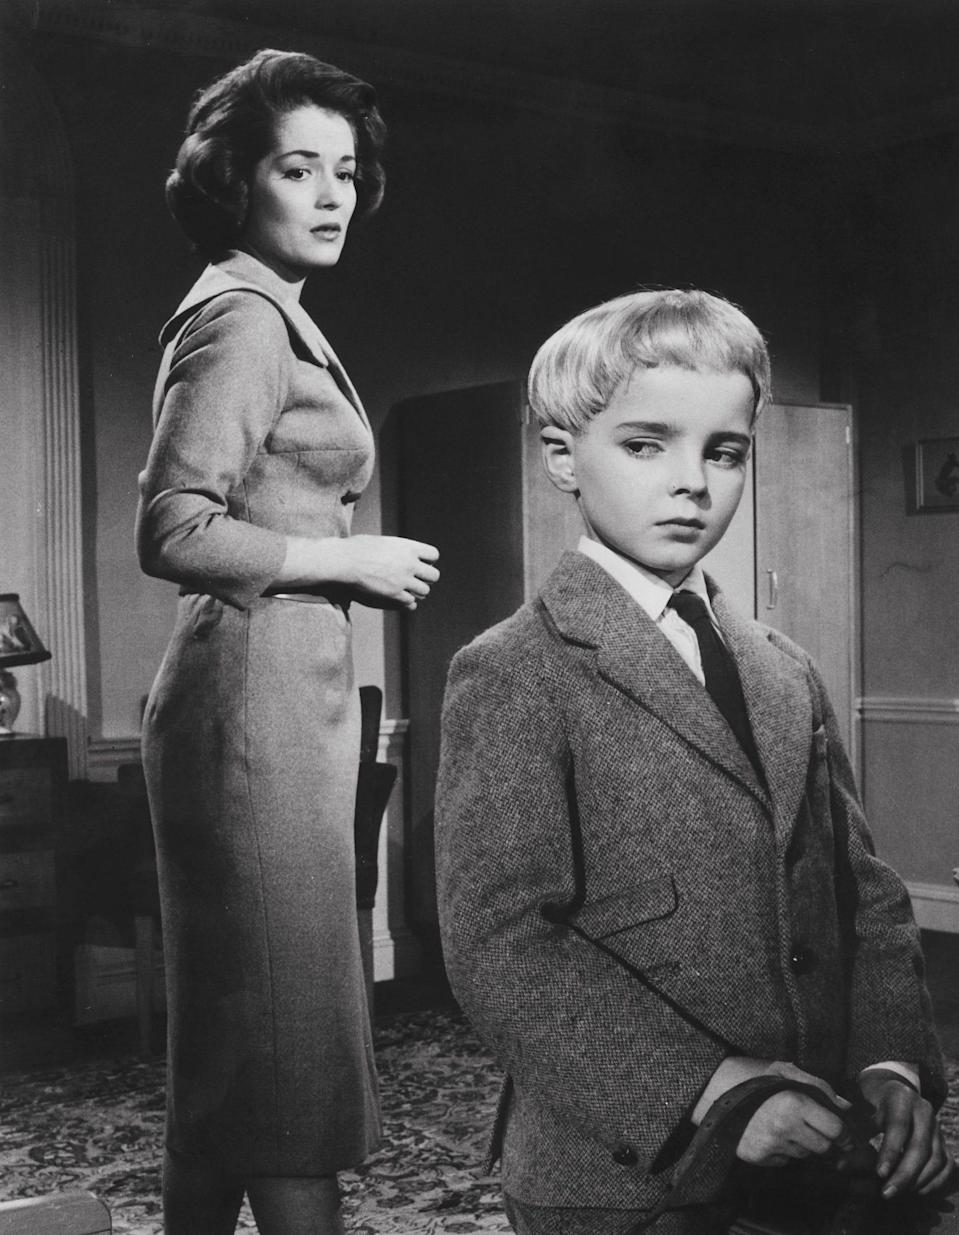 With Martin Stephens in Village of the Damned (1962) -  Mgm/Kobal/Shutterstock